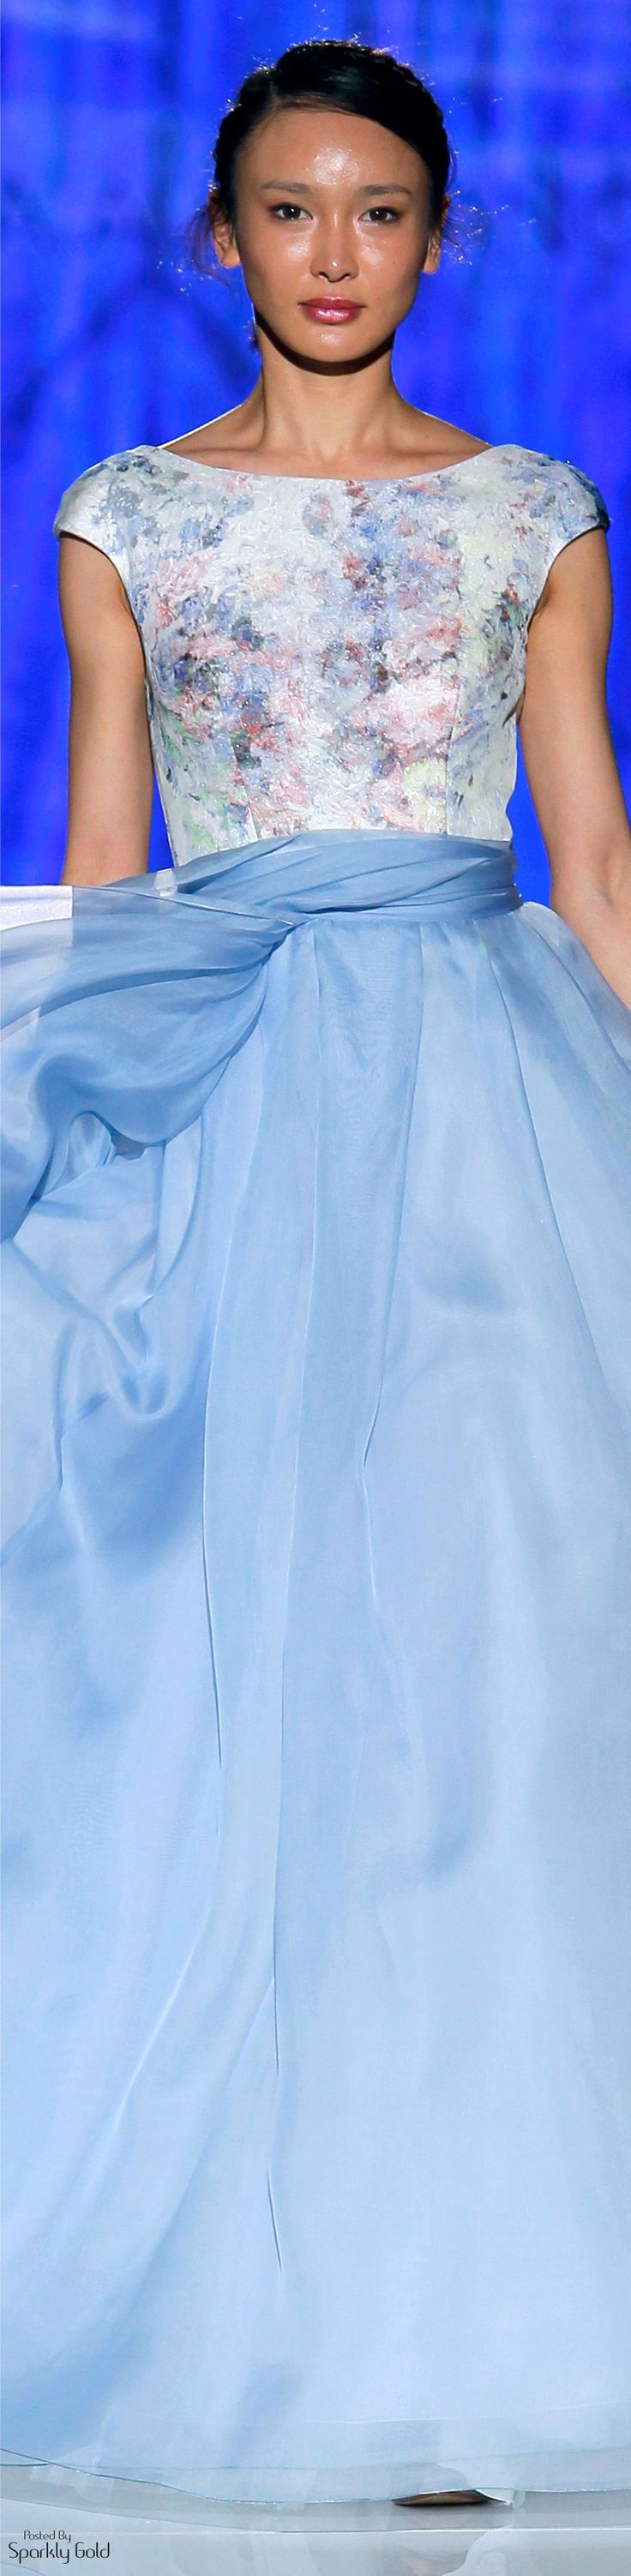 Goodliness cocktail ball gowns dresses cocktail gown aa